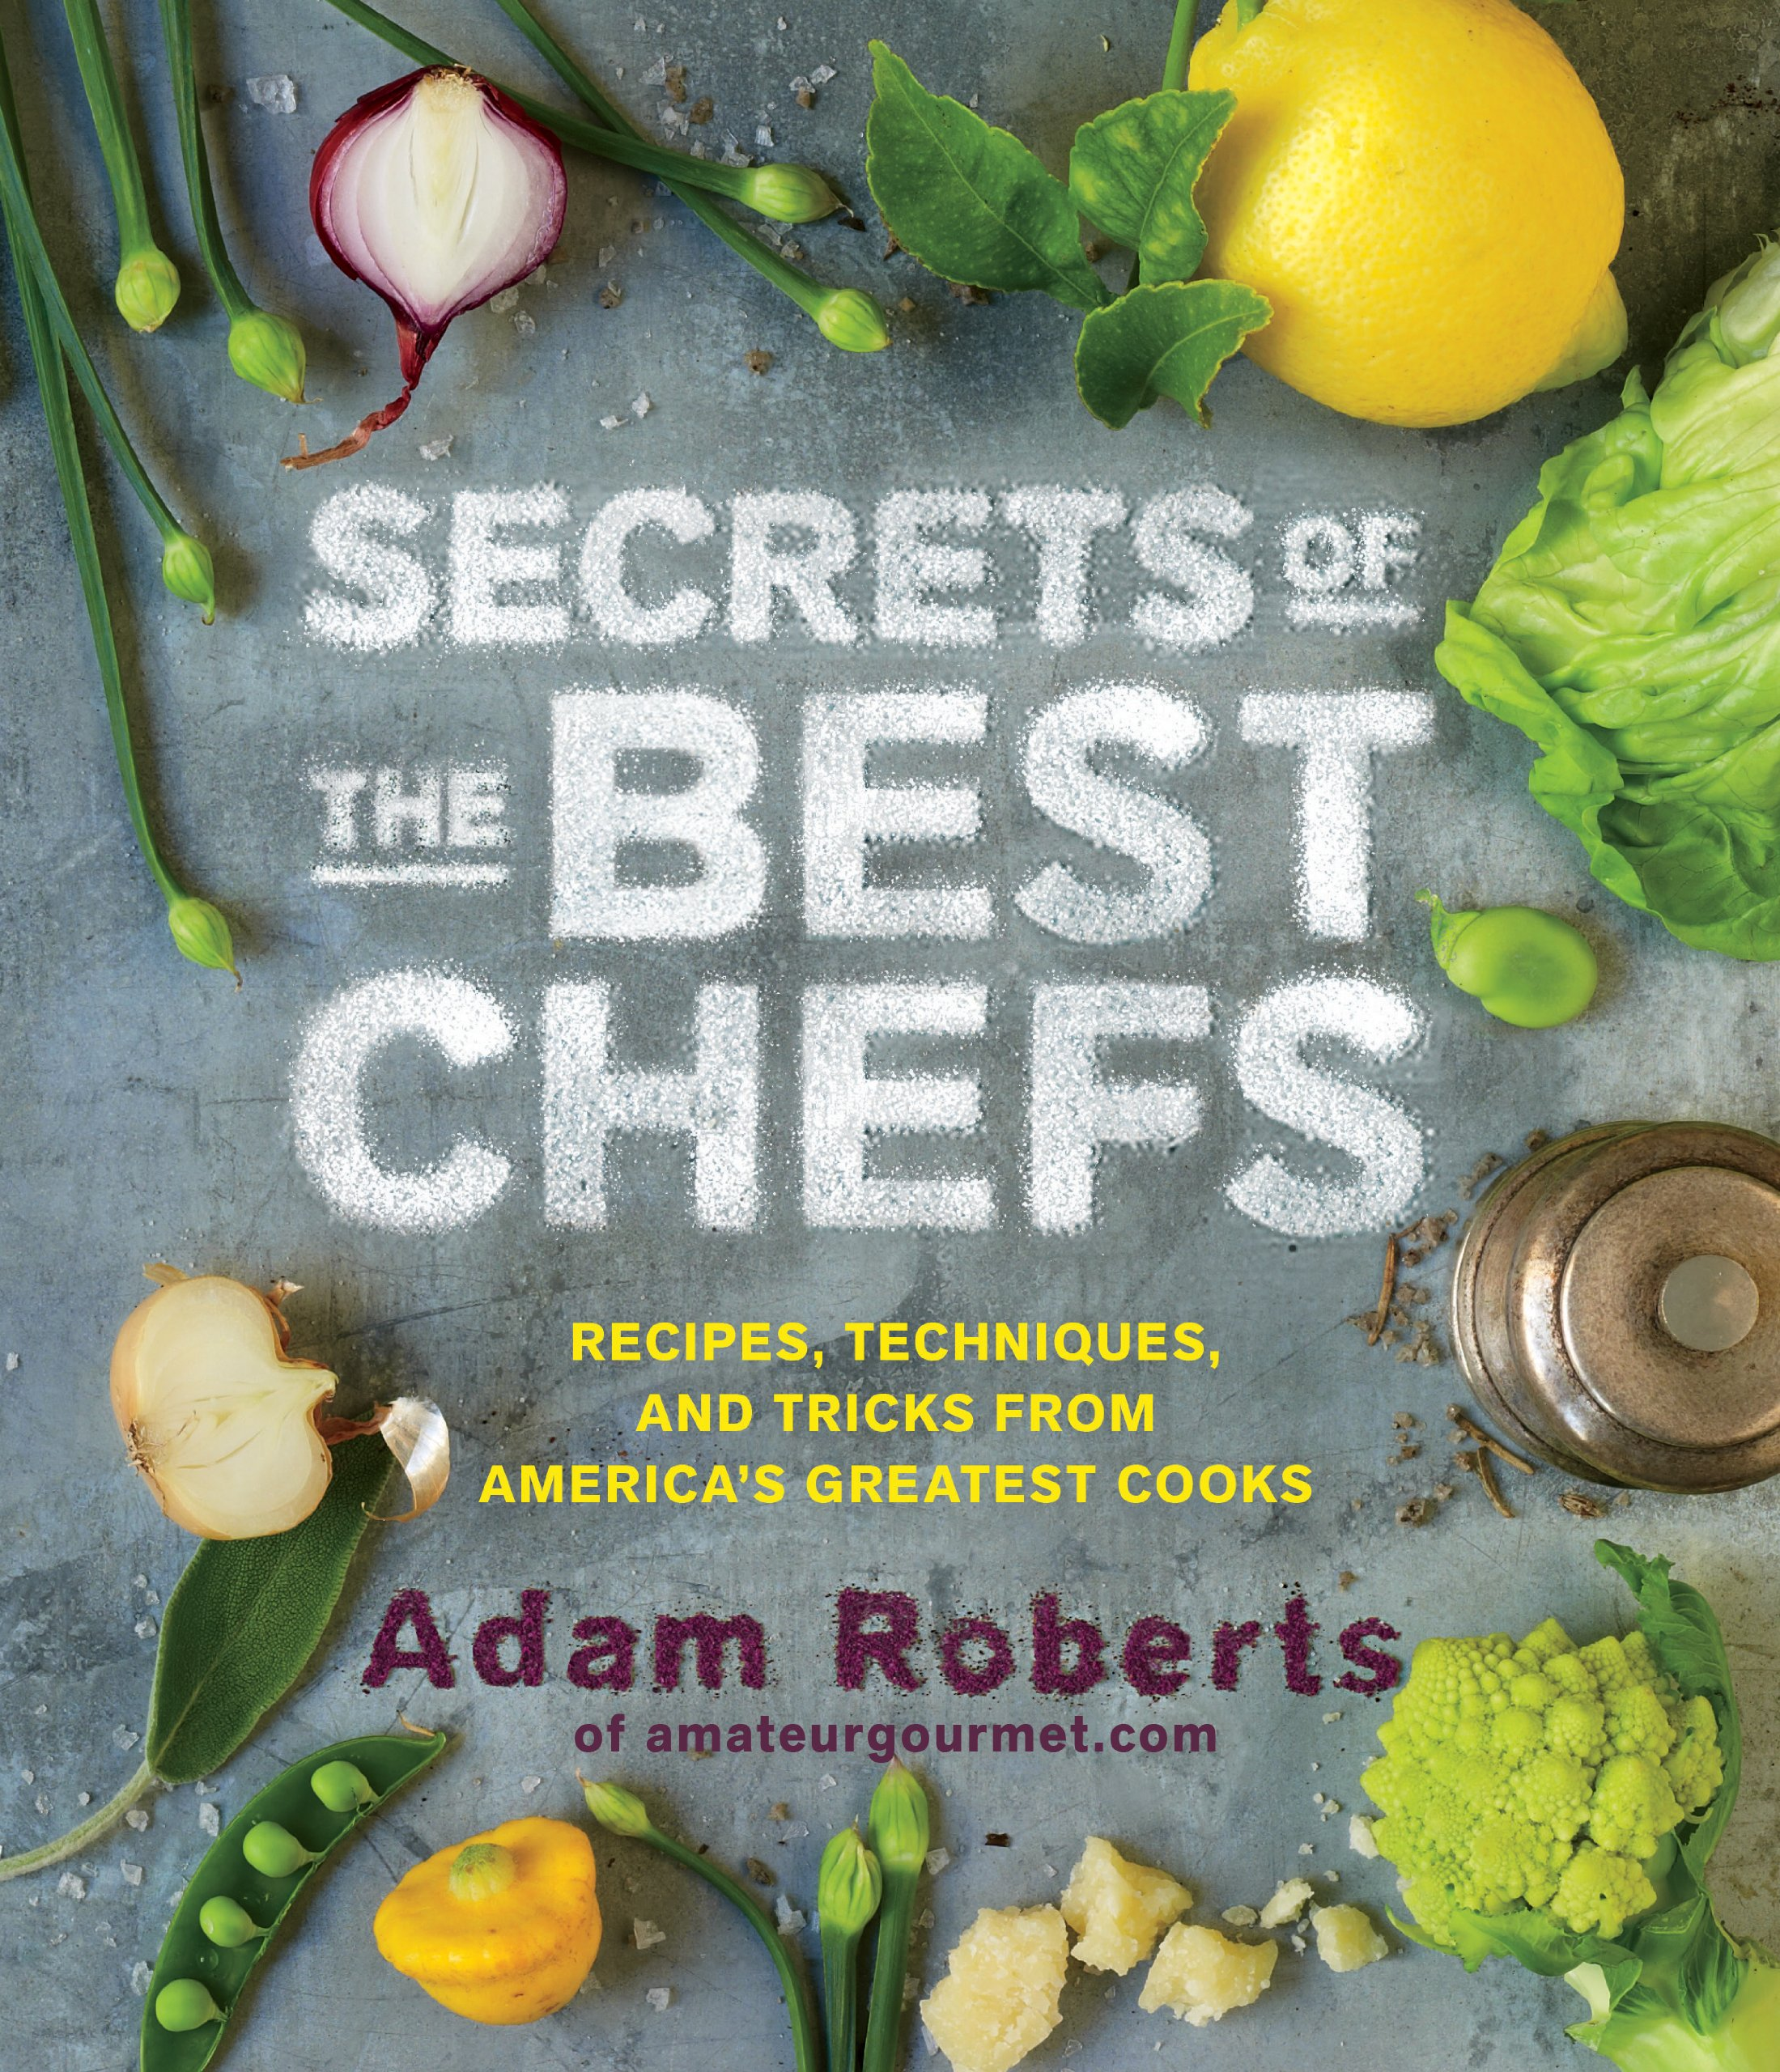 Best Cookbook Covers ~ Secrets of the best chefs recipes techniques and tricks from